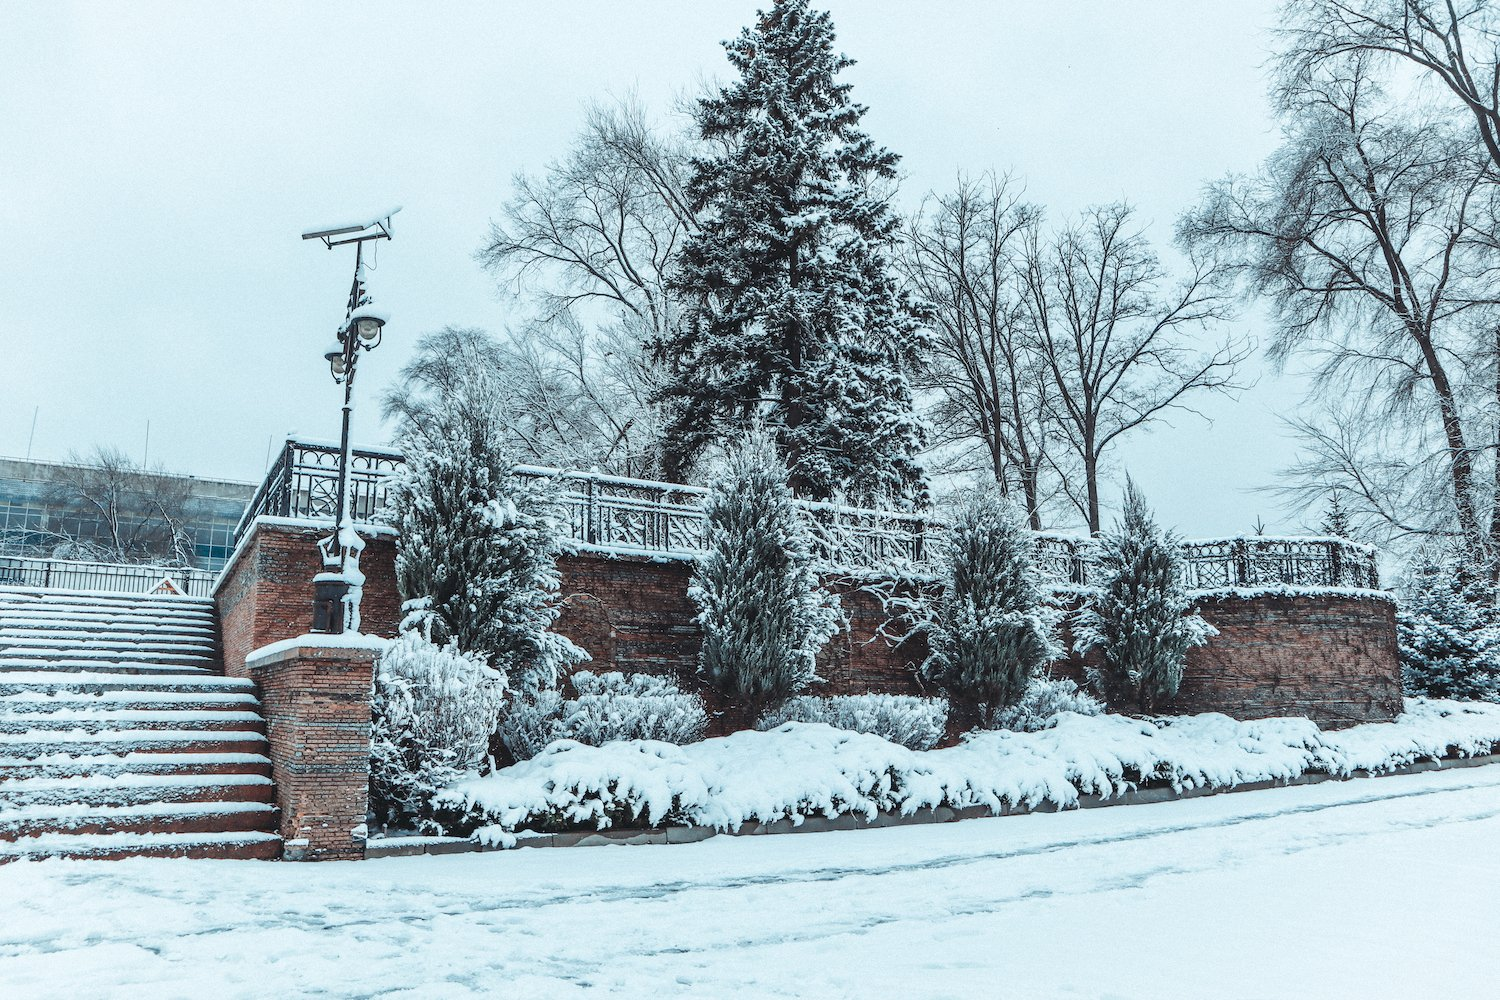 winter city landscape with snow example image 1